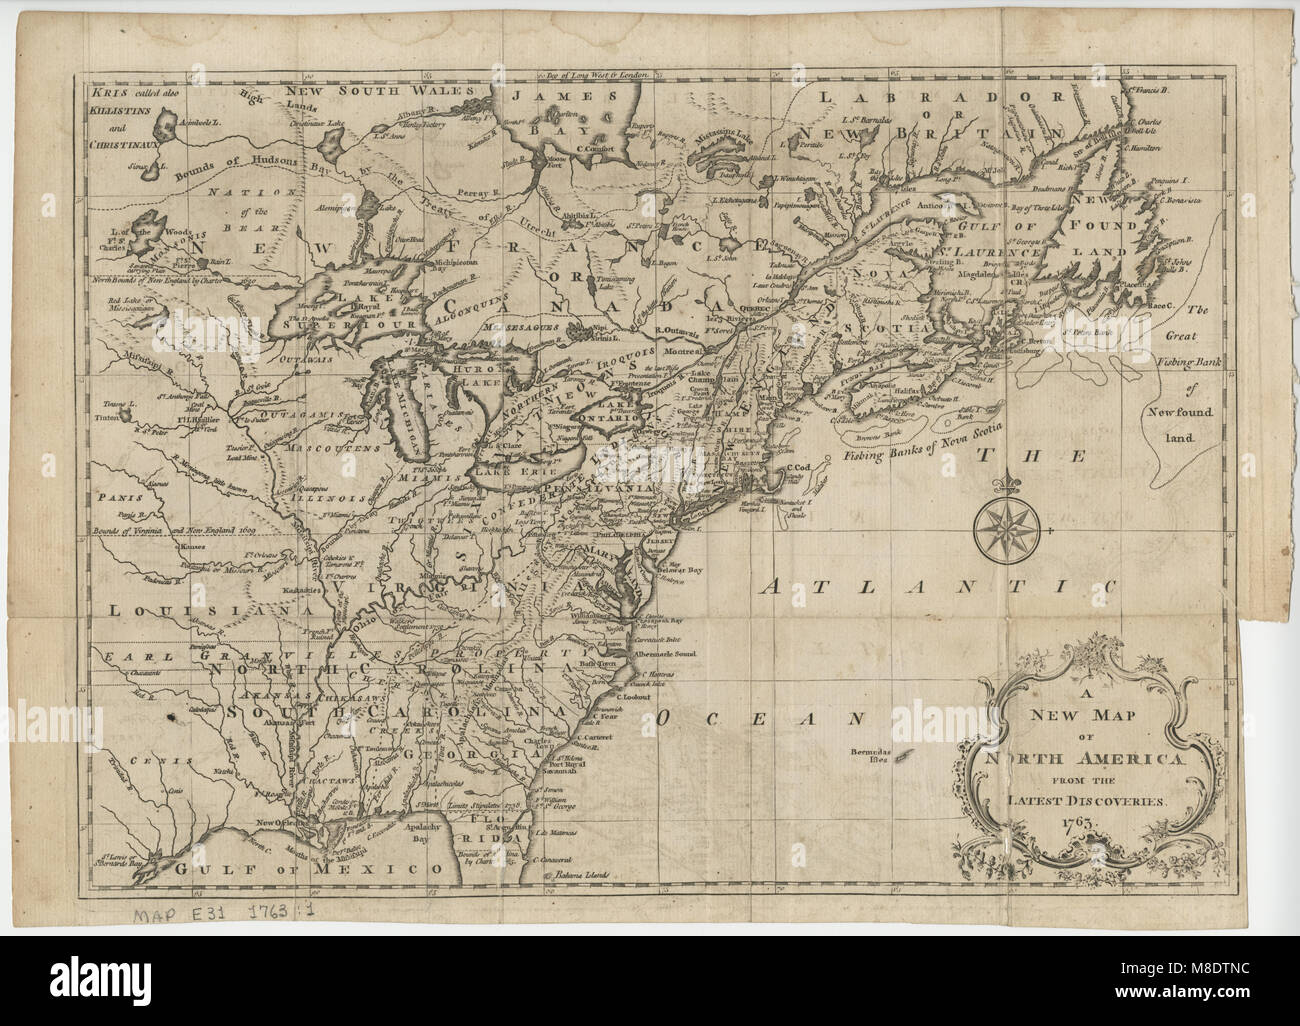 Map Of North America 1763.A New Map Of North America 1763 Stock Photo 177325720 Alamy